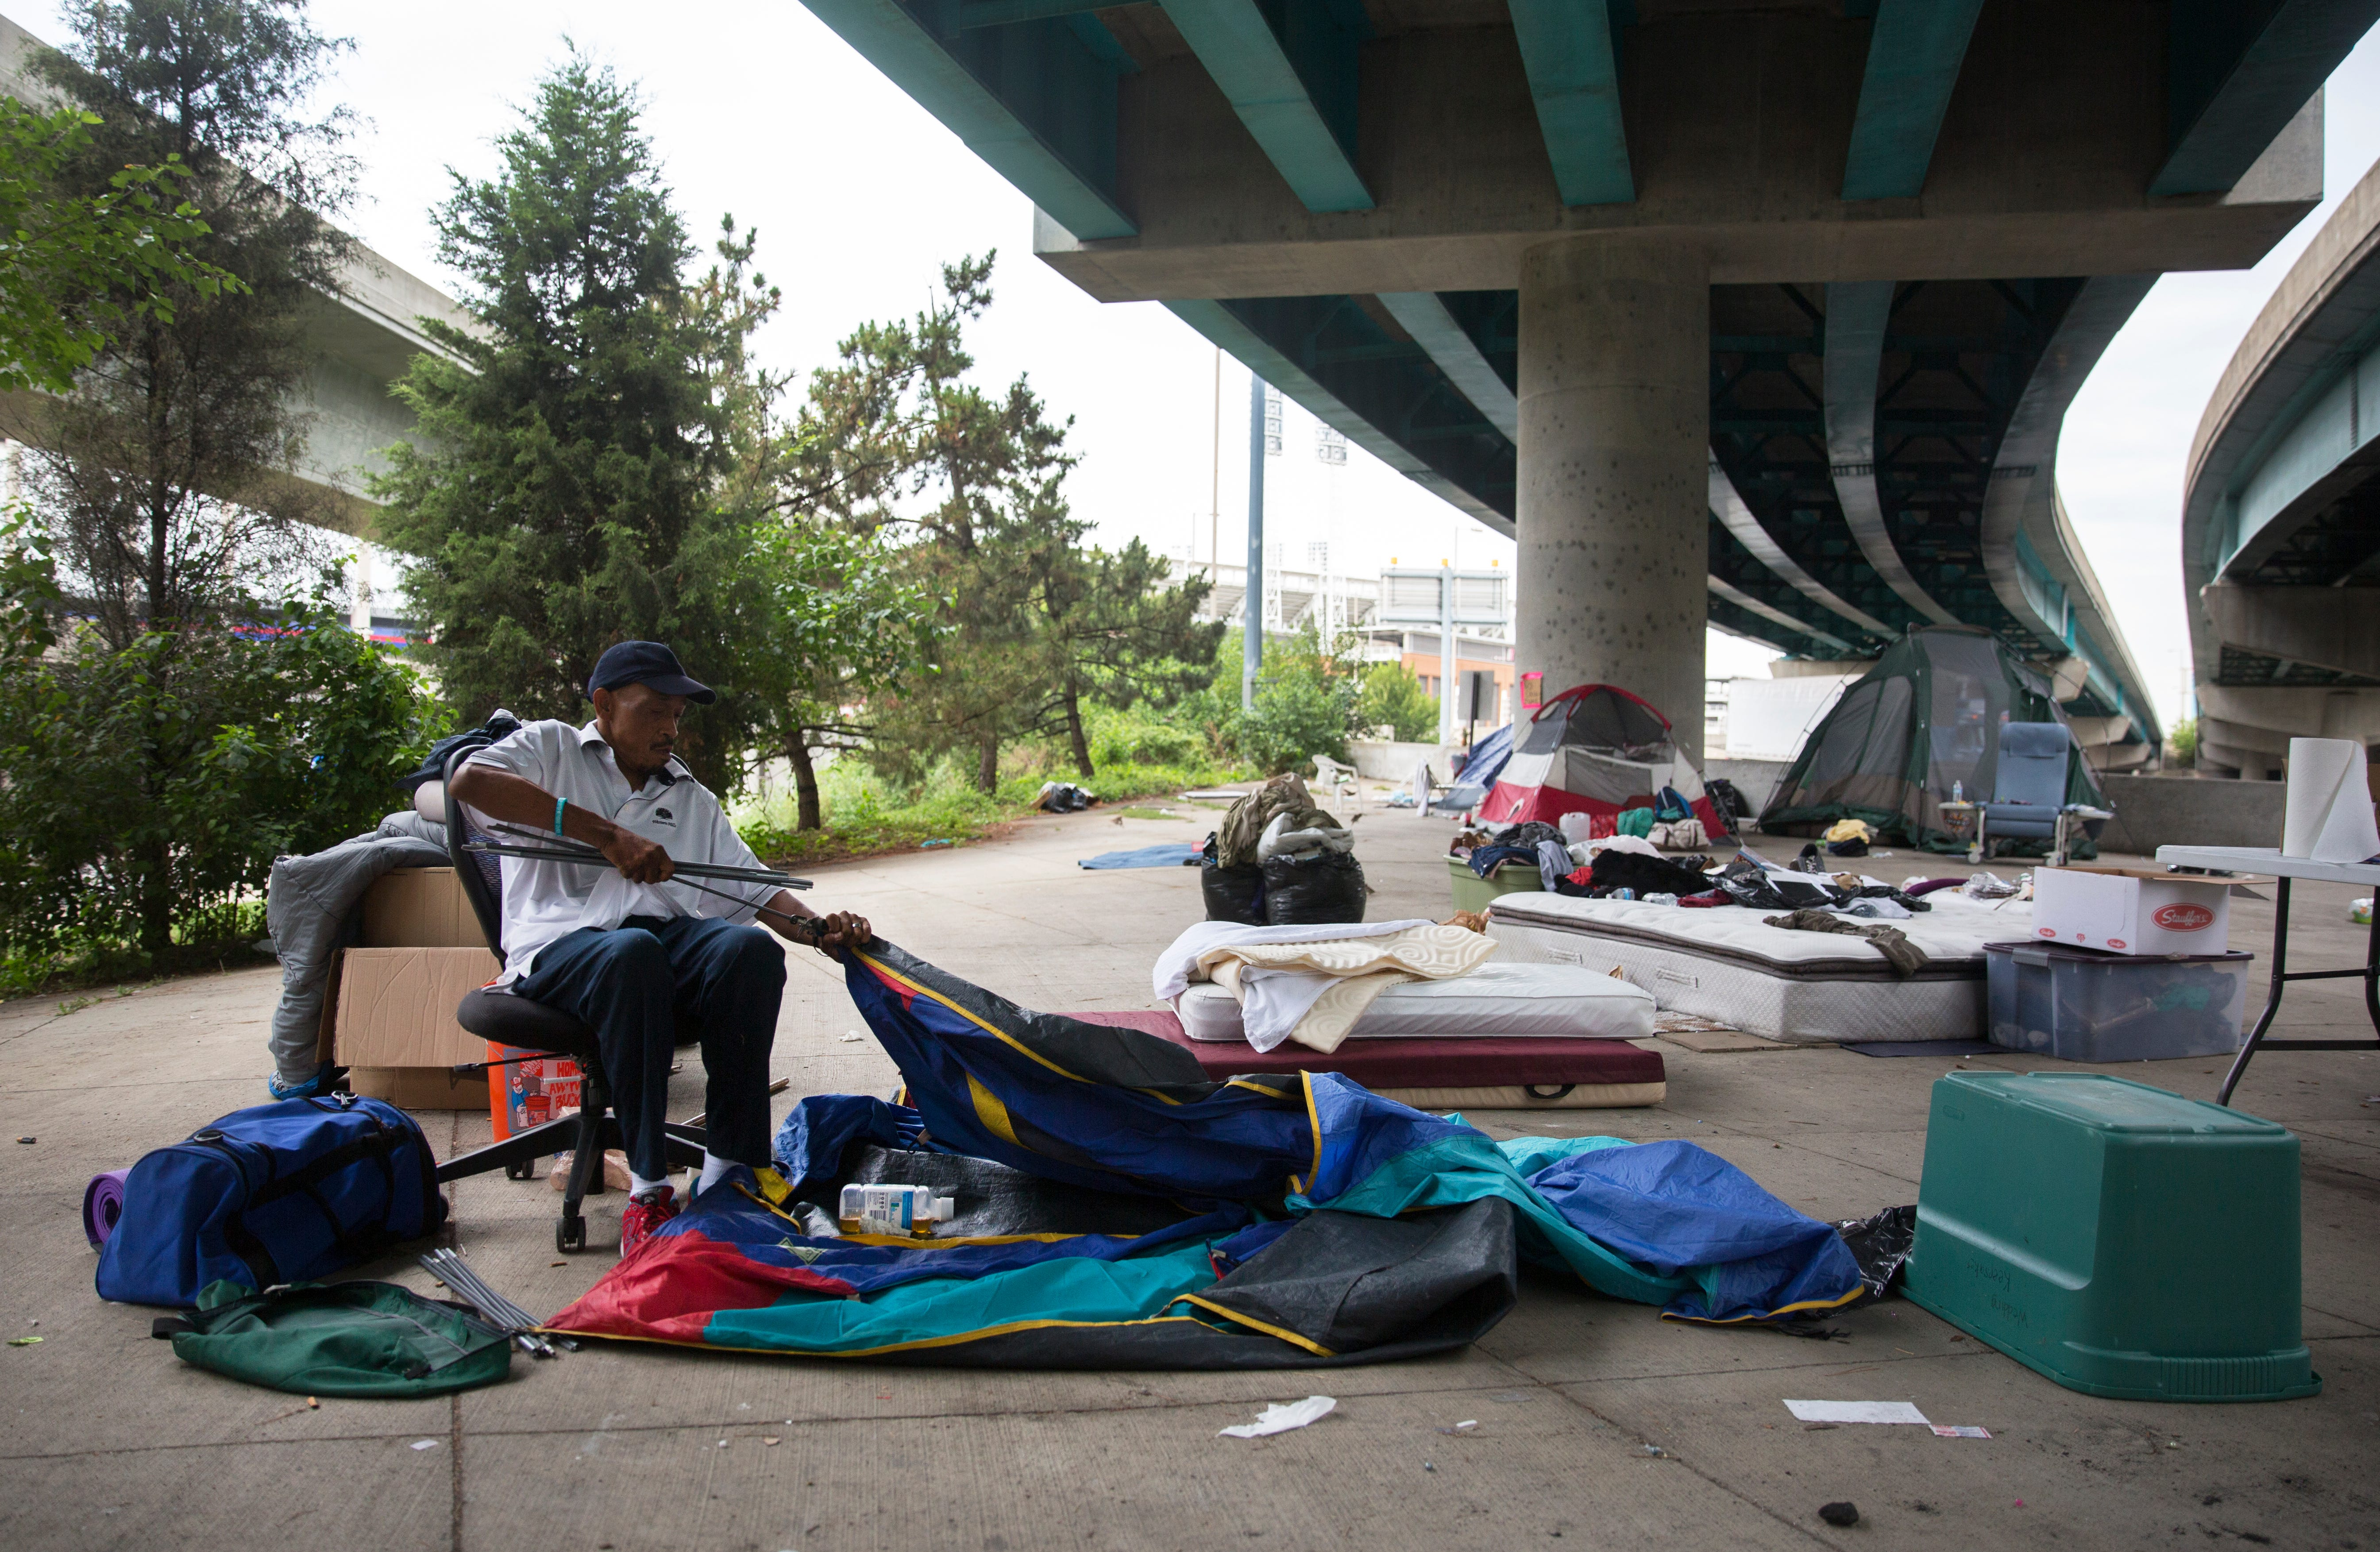 Is being homeless illegal? Ohio court rulings raise the question